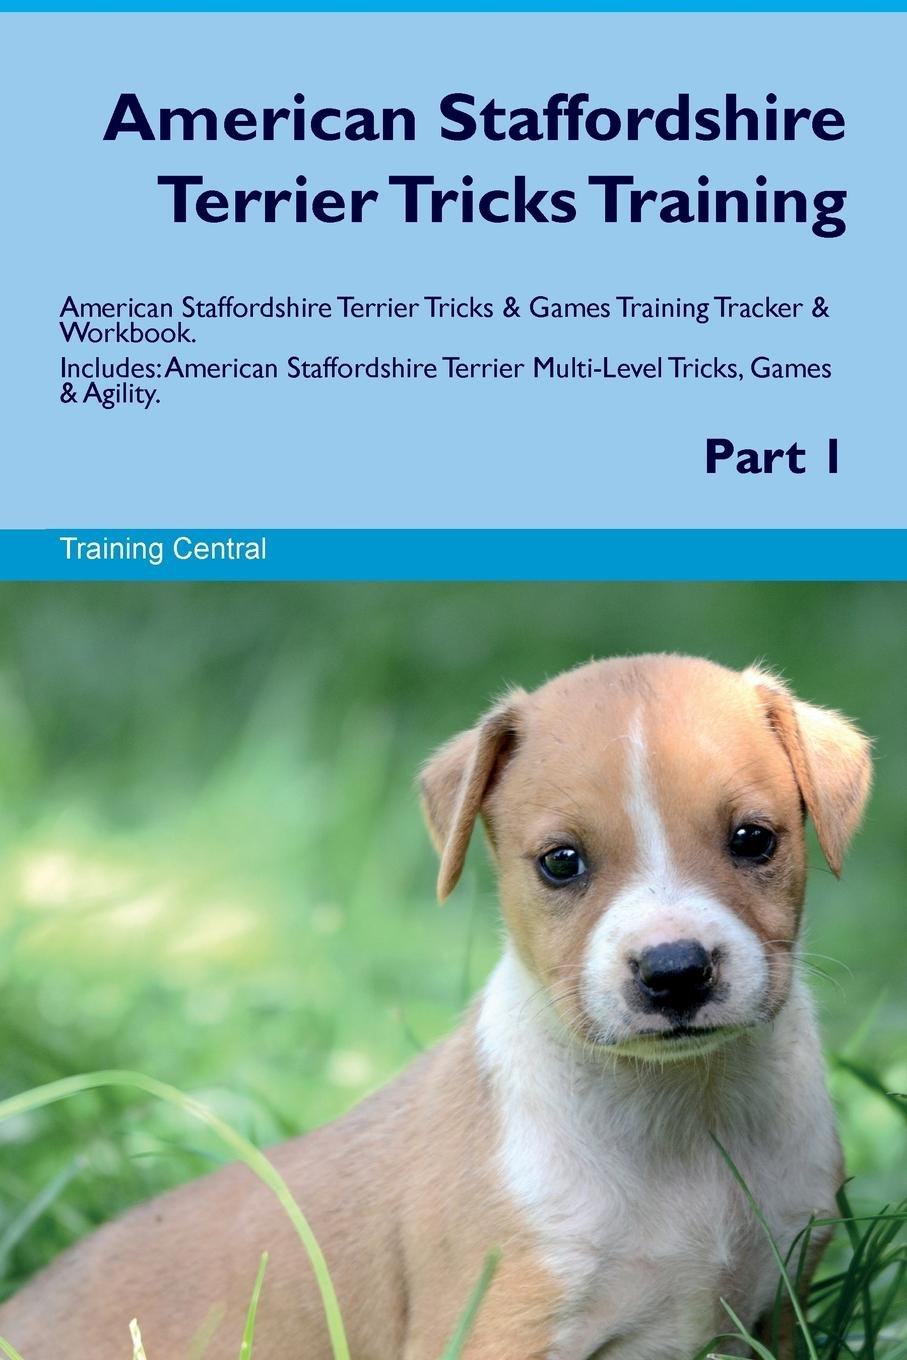 American Staffordshire Terrier Tricks Training American Staffordshire Terrier Tricks & Games Training Tracker & Workbook.  Includes: American ... Multi-Level Tricks, Games & Agility. Part 1 pdf epub